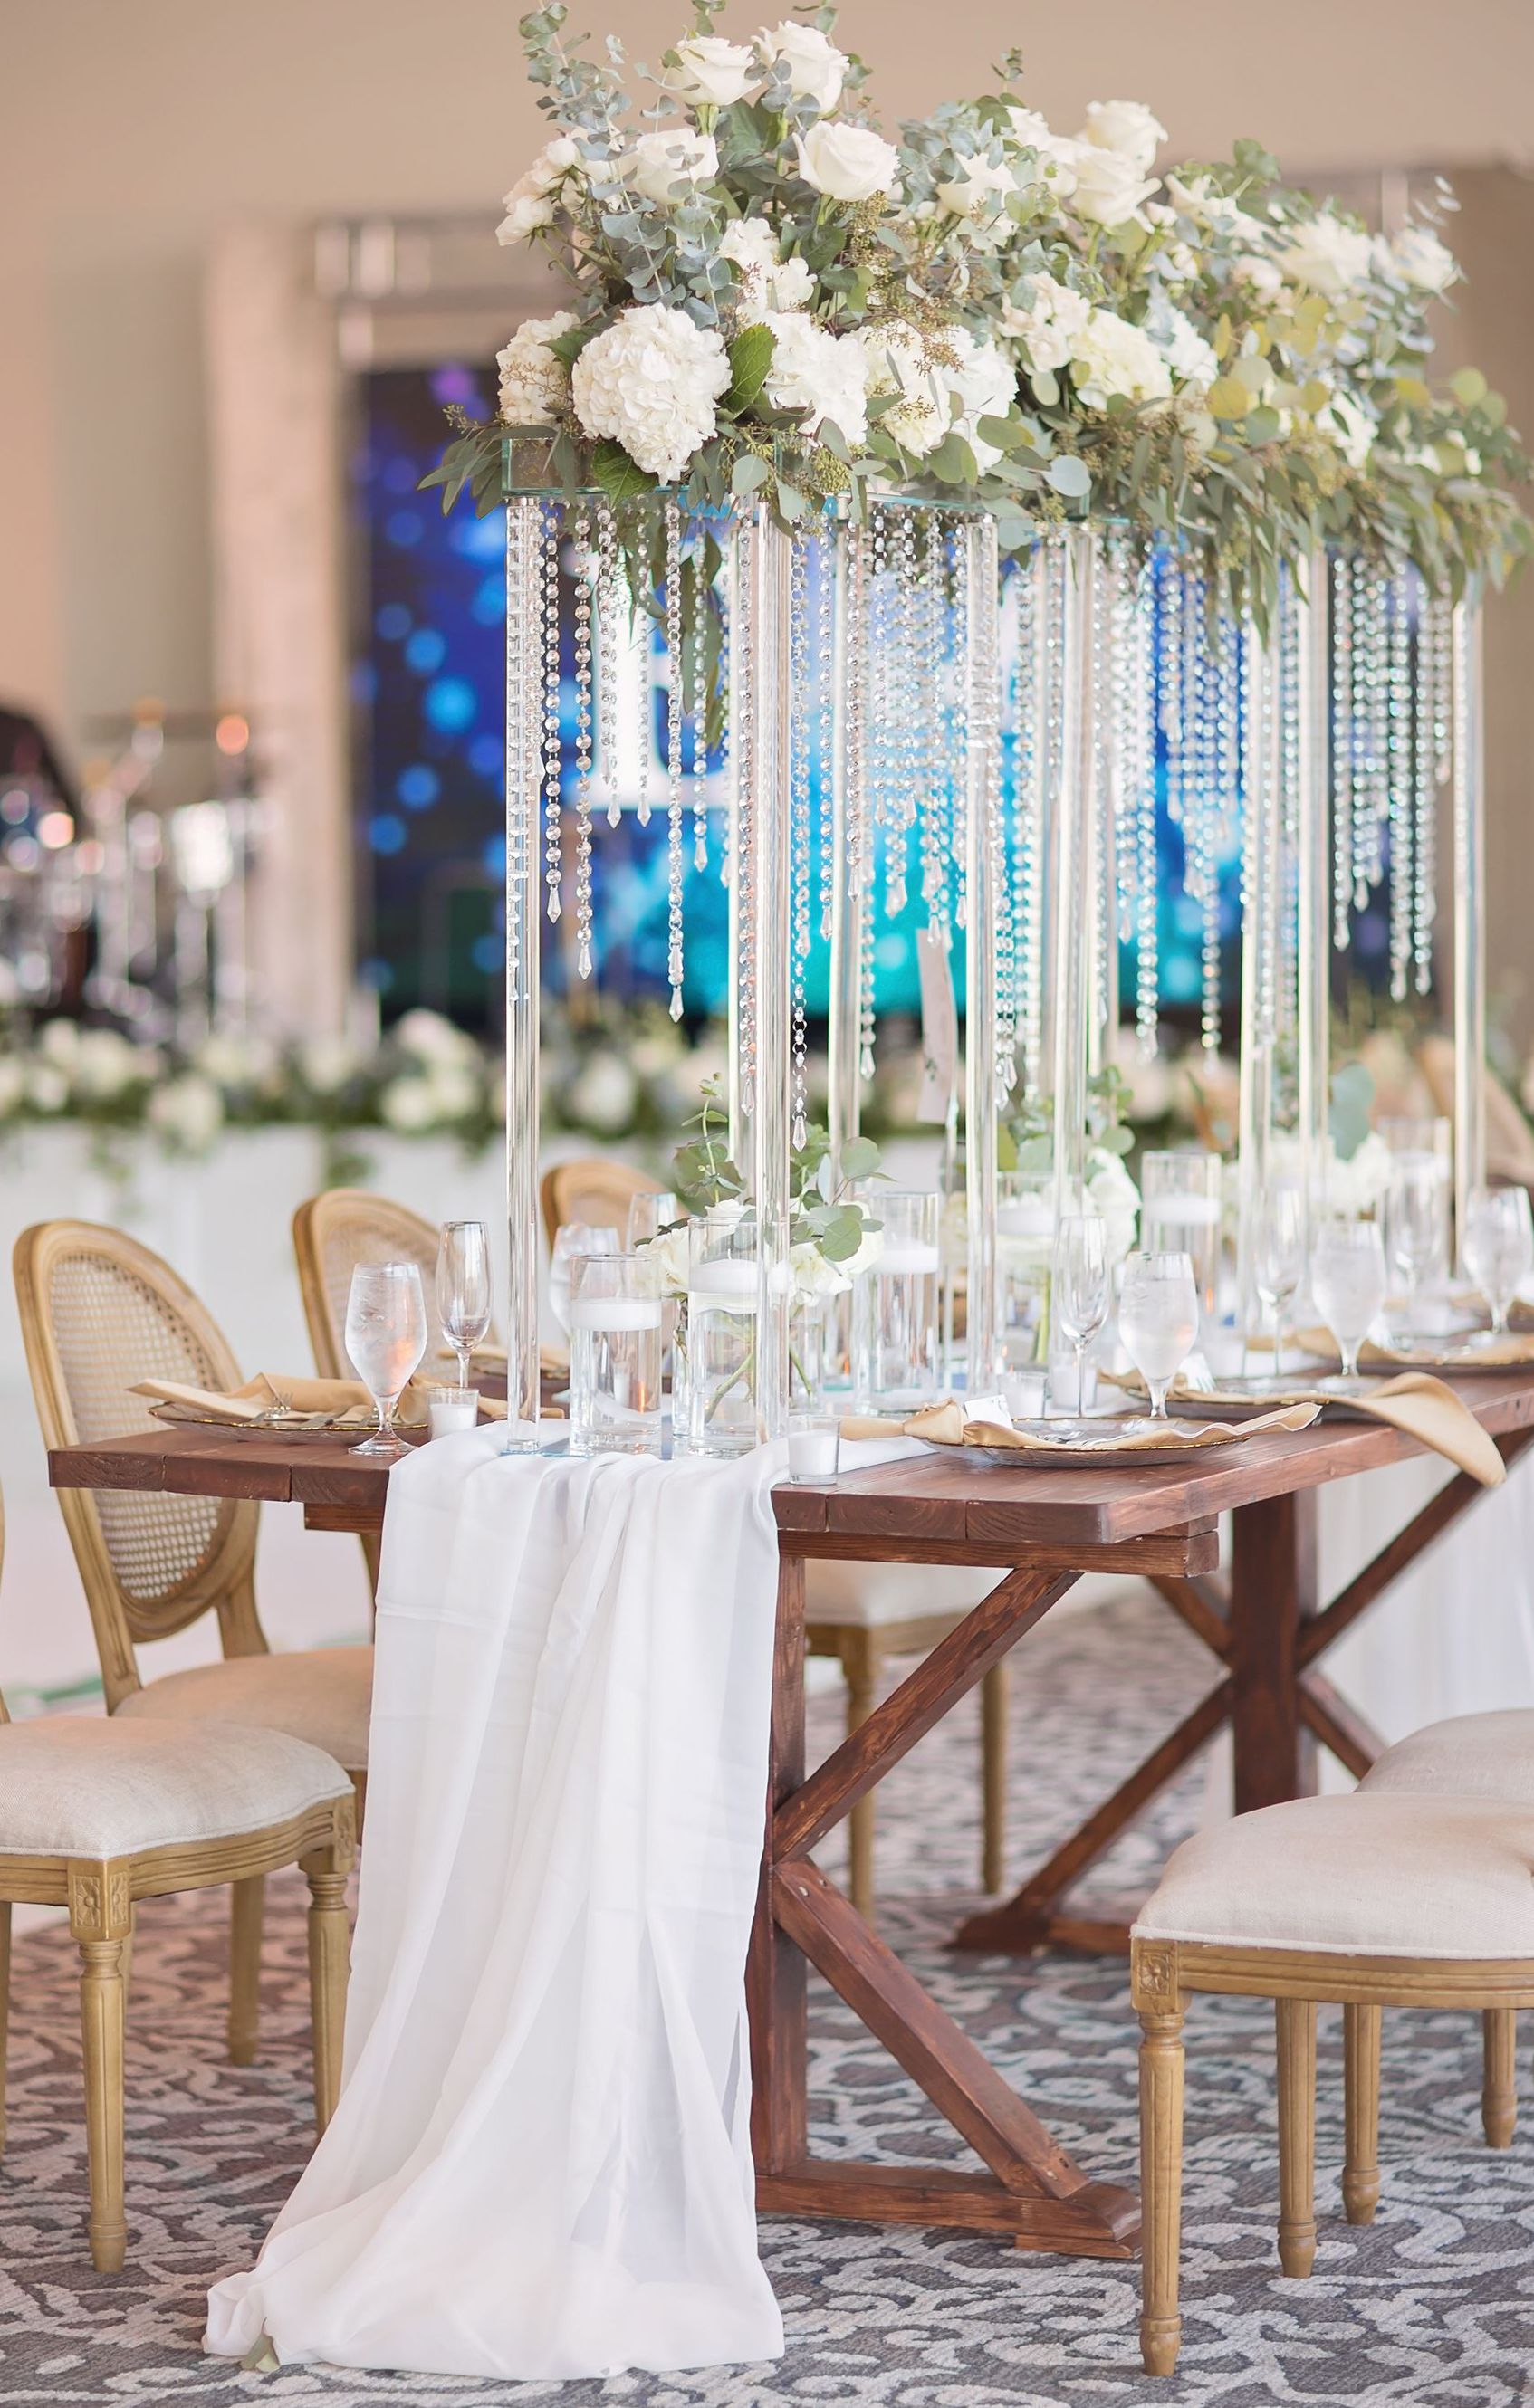 Crystal glass reception decor is set up in the center of the table, including a long white table runner, floating candles, small singular candles, white rose and eucalyptus floral arrangements, and hanging crystal beads.